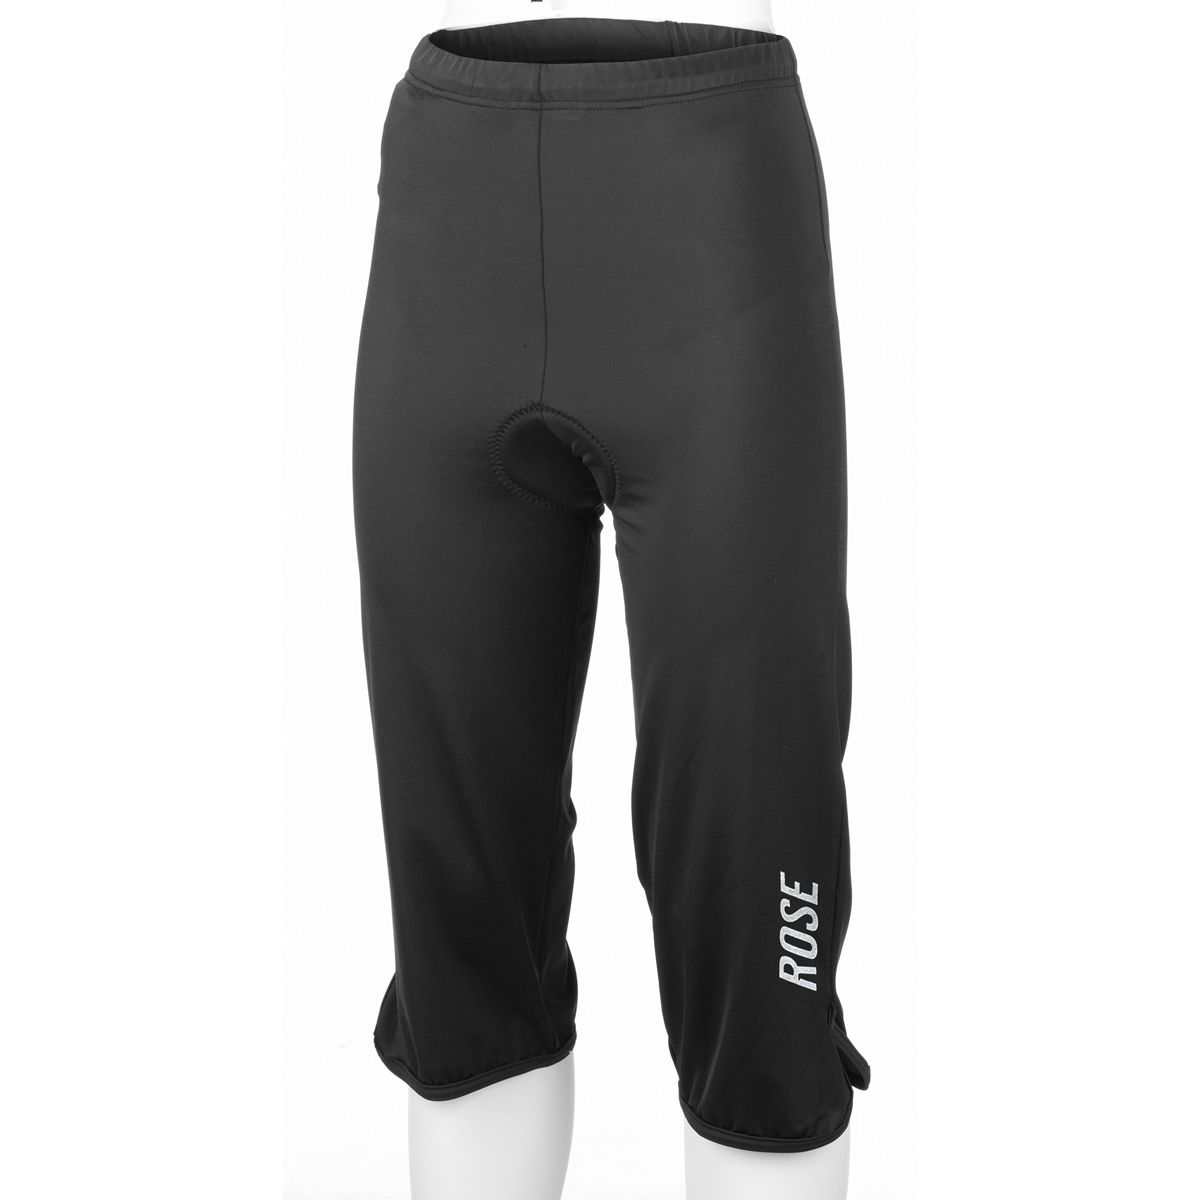 women's Capri 3/4 cycling pants